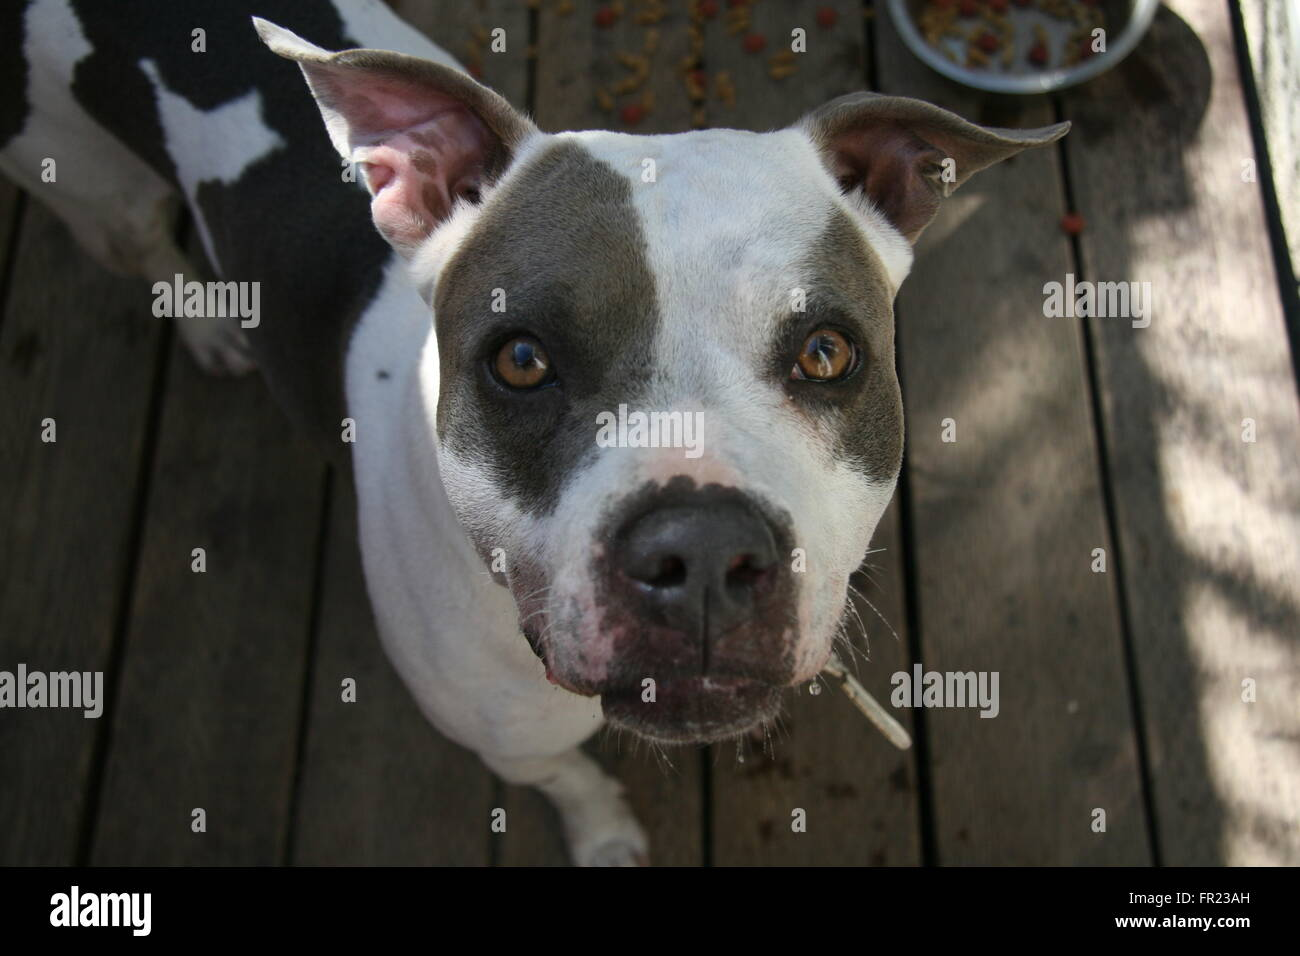 PitBull - Stock Image